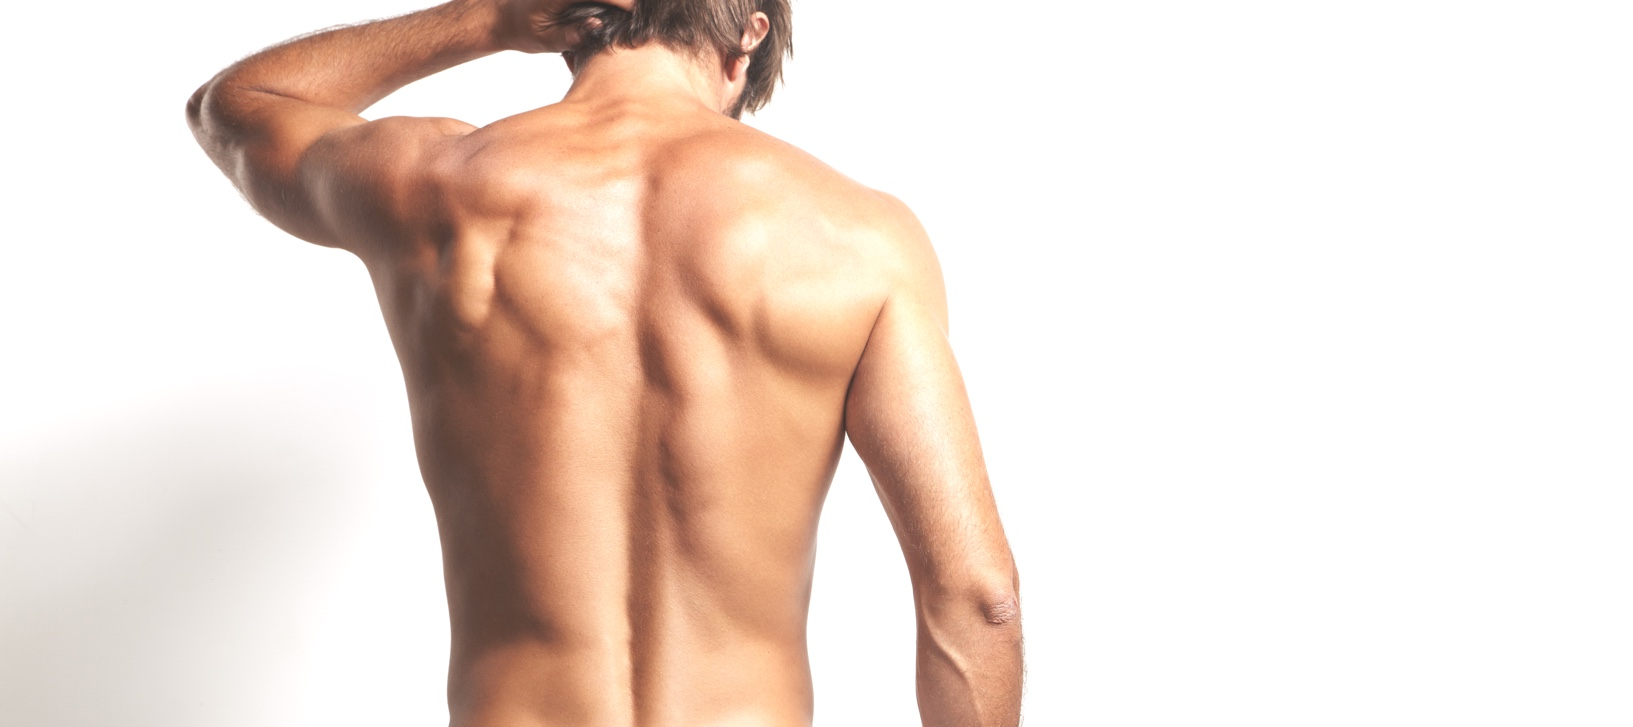 Laser Hair Removal For Men Get Rid Of Unwanted Hair